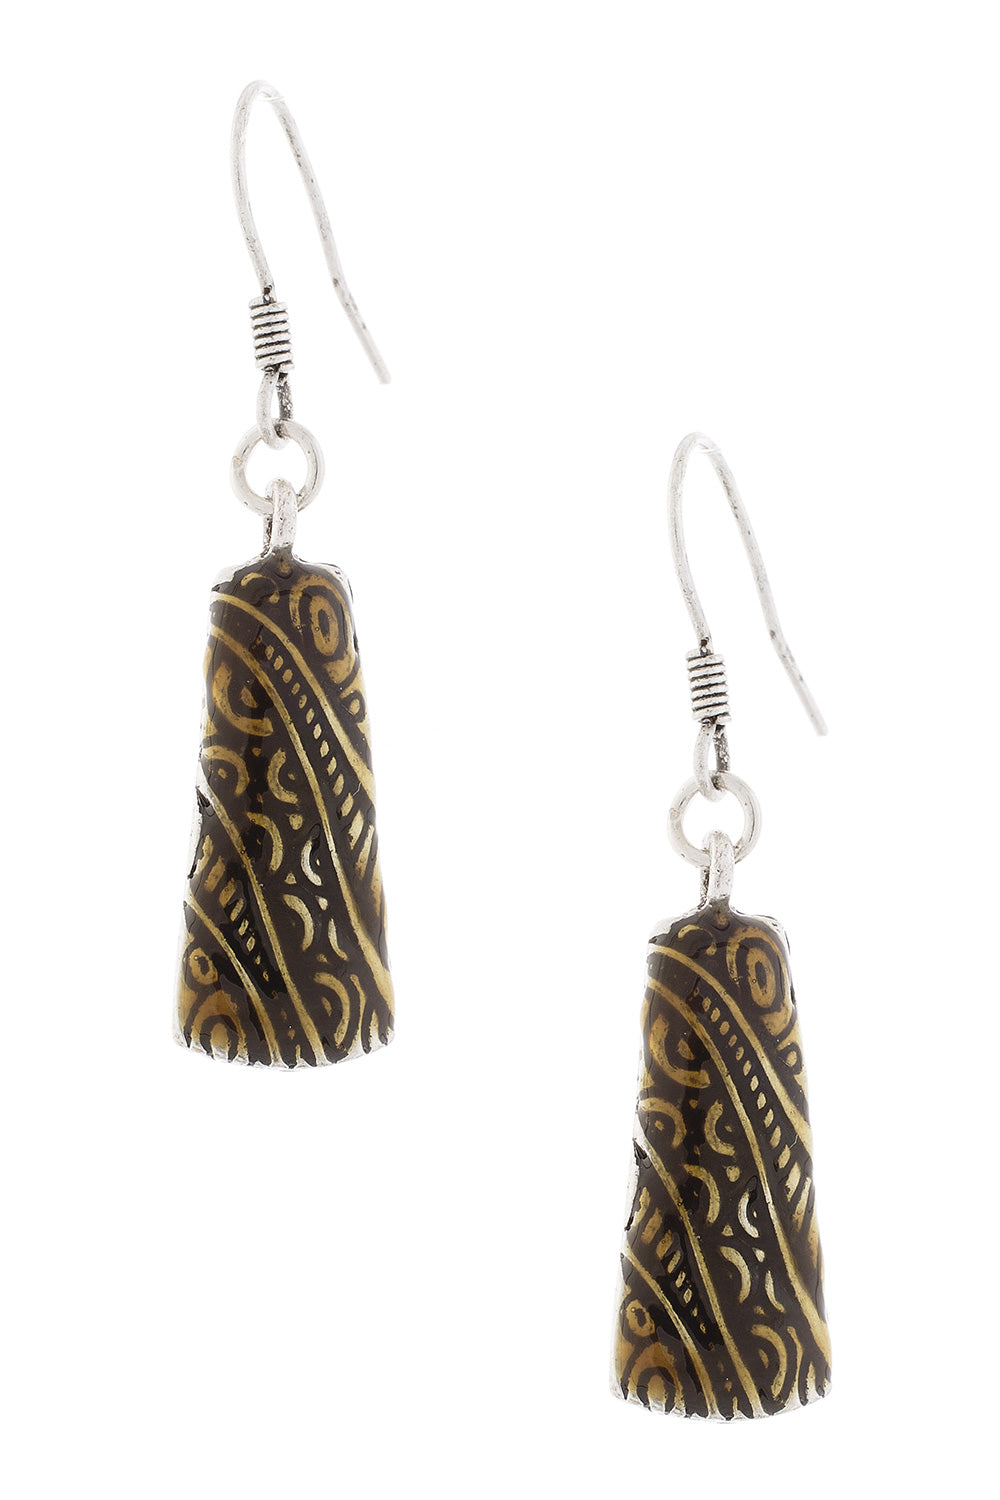 Type 3 Mayan Metal Earrings